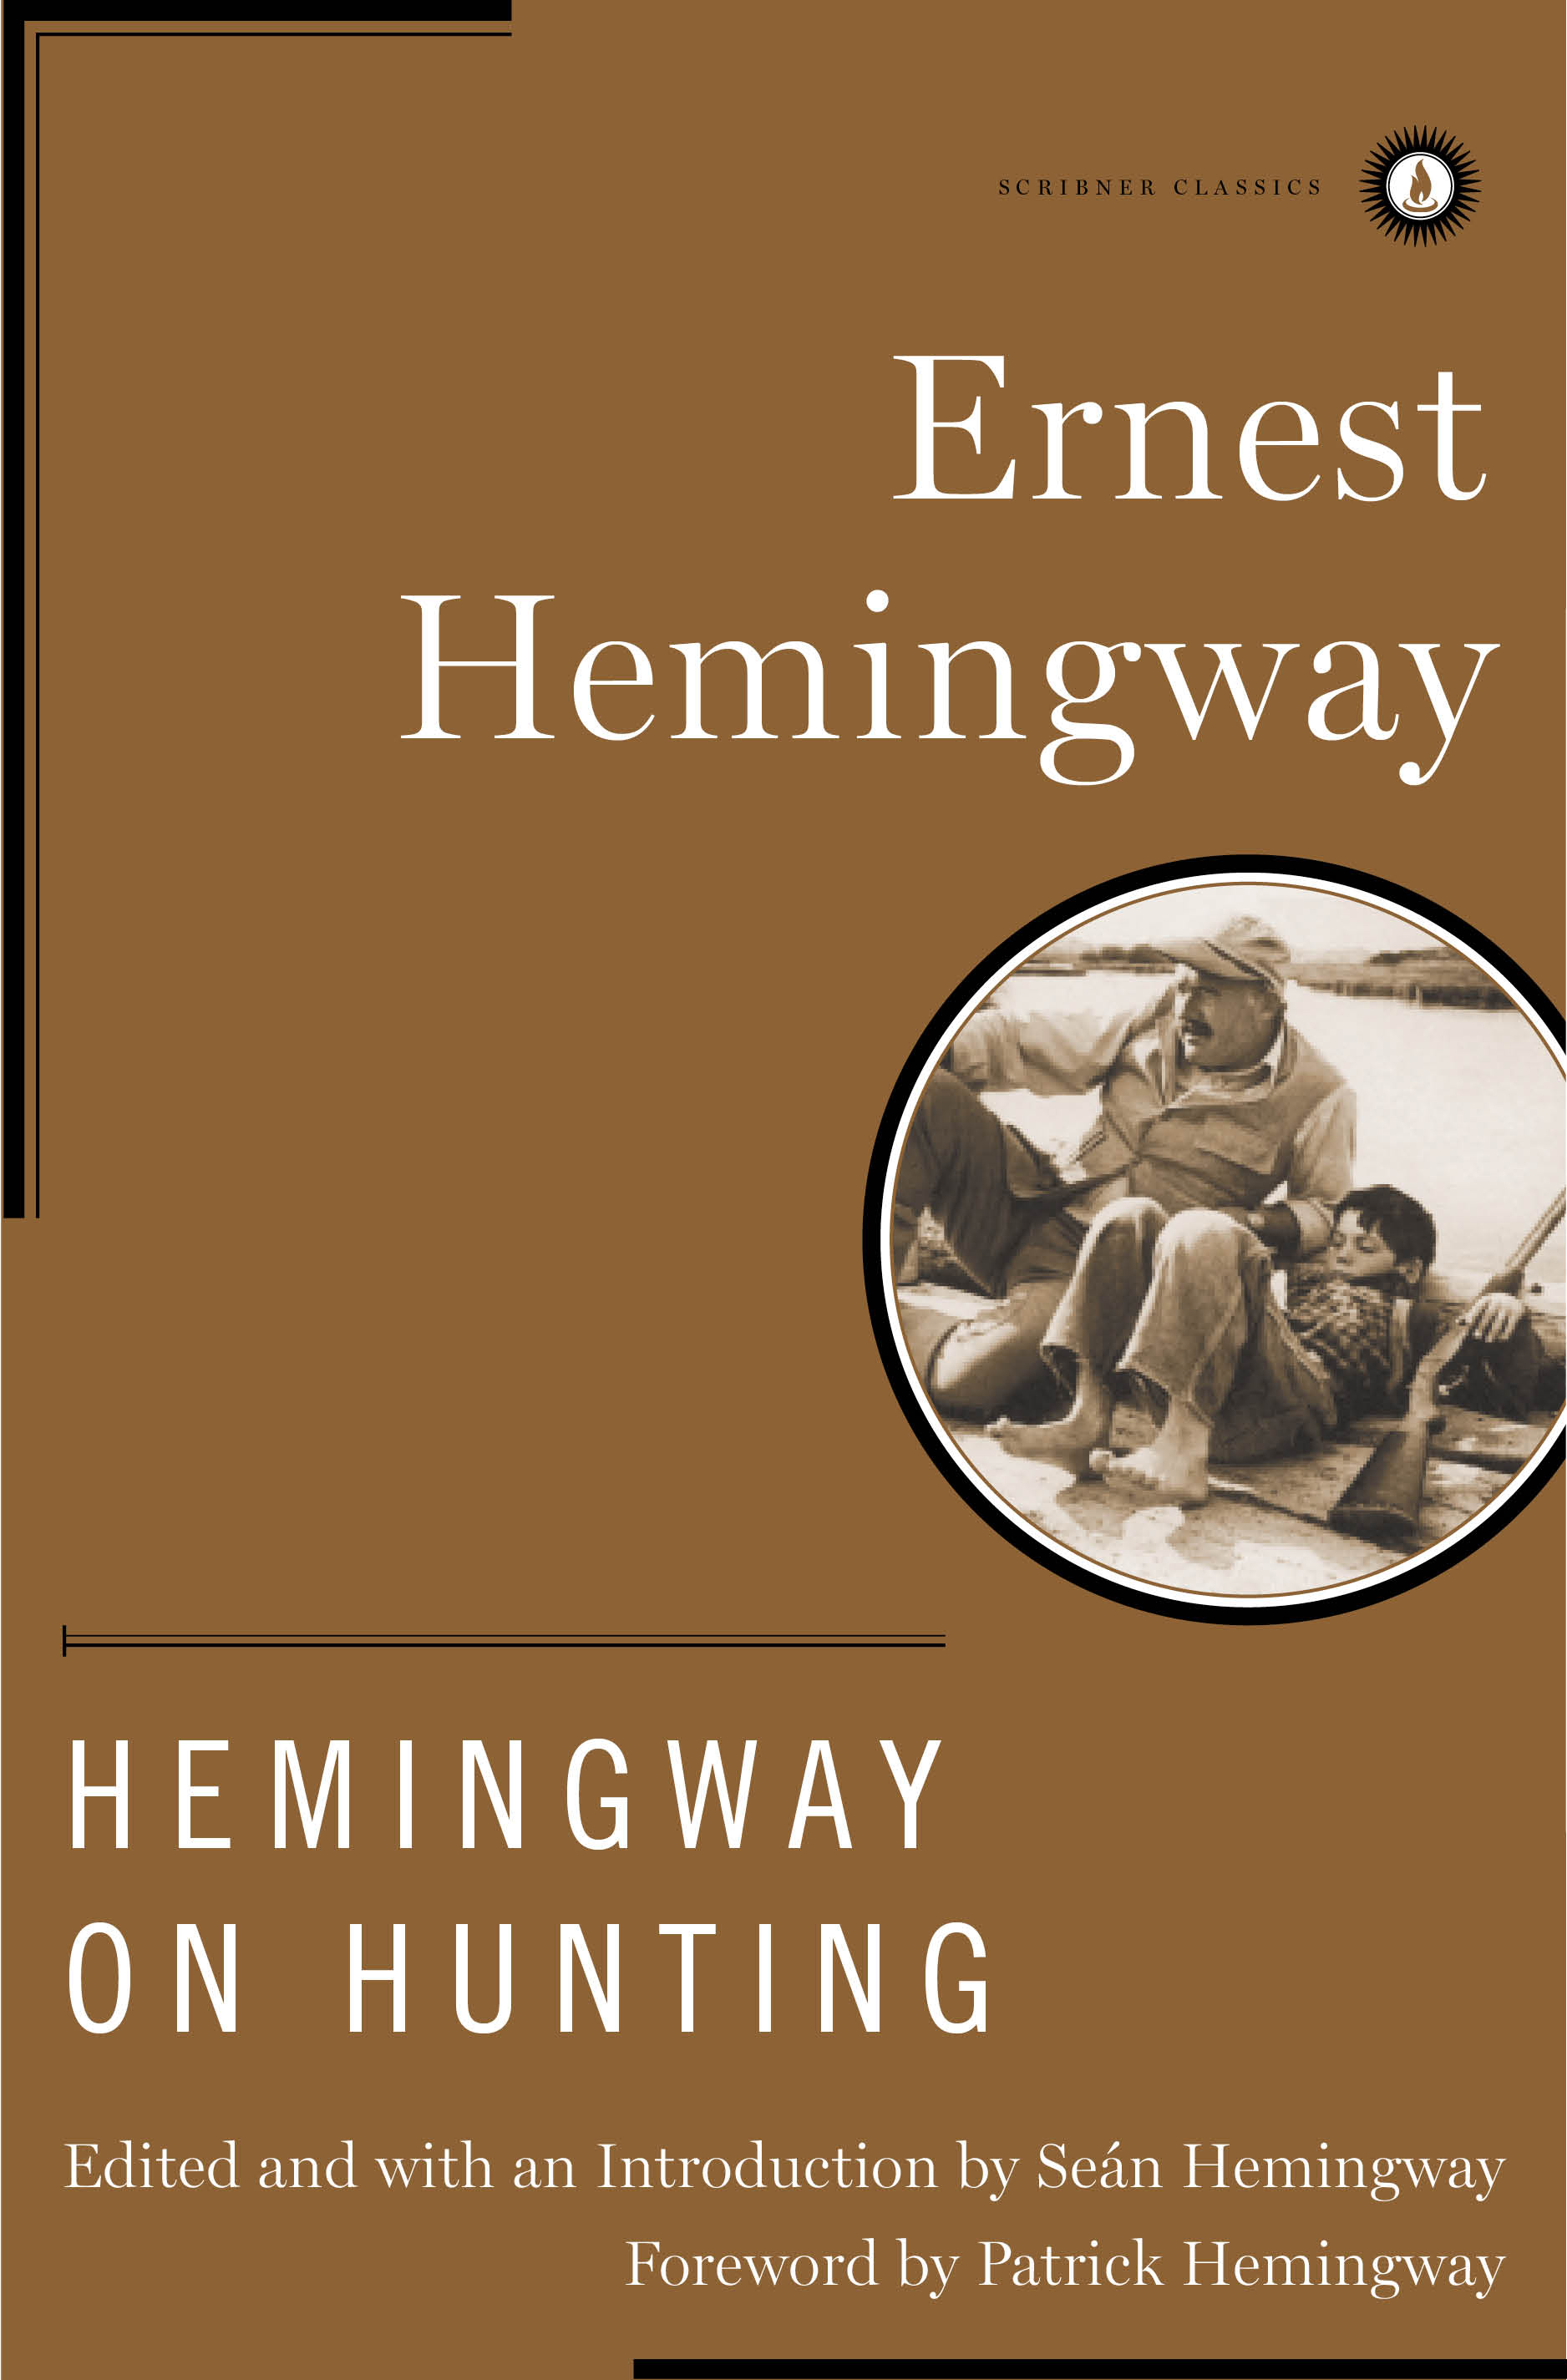 essay on now i lay me hemingway  essay on now i lay me hemingway